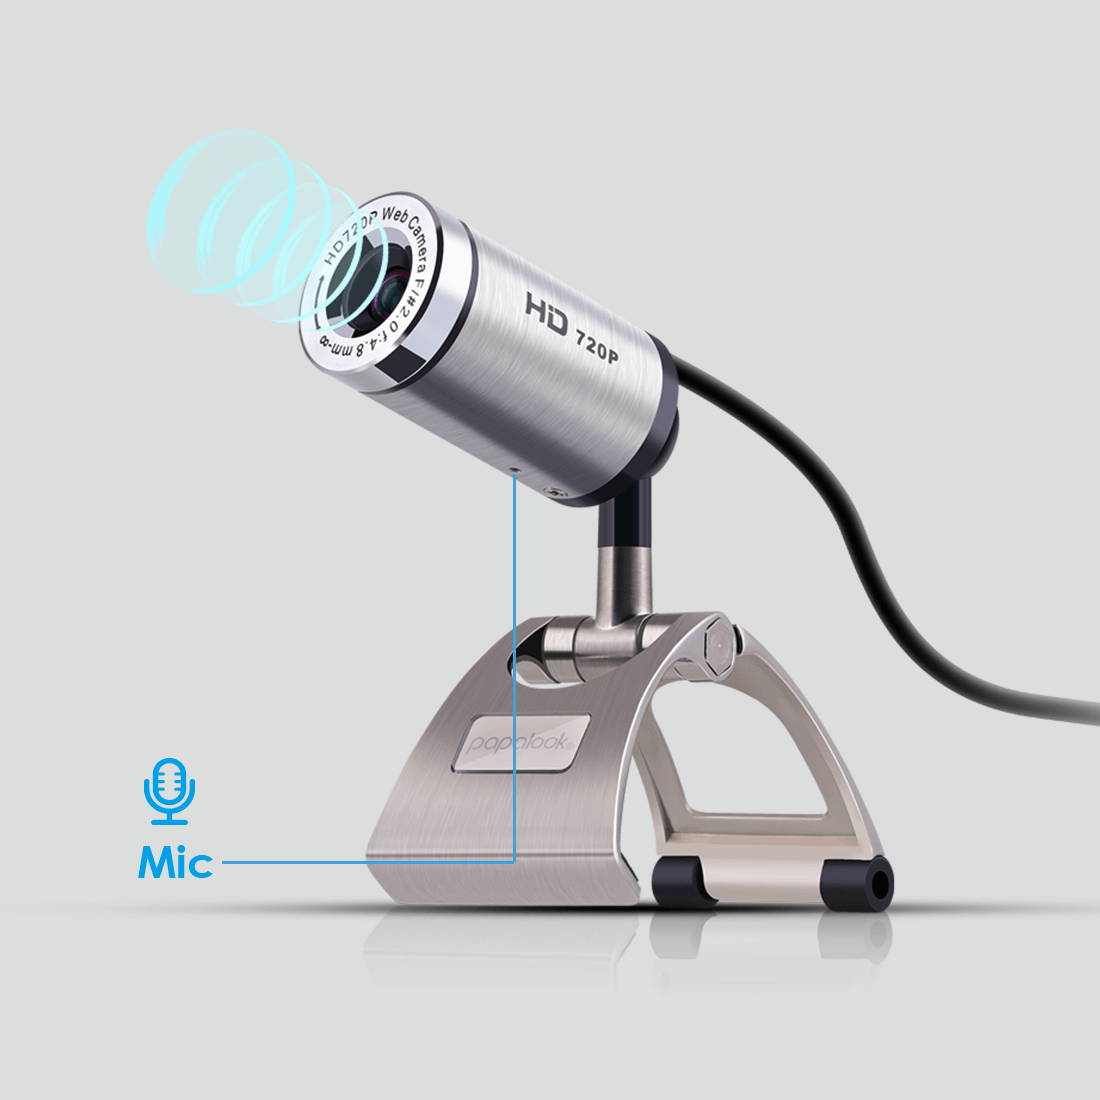 Built-in noise cancelling mic assures clearer conversations.